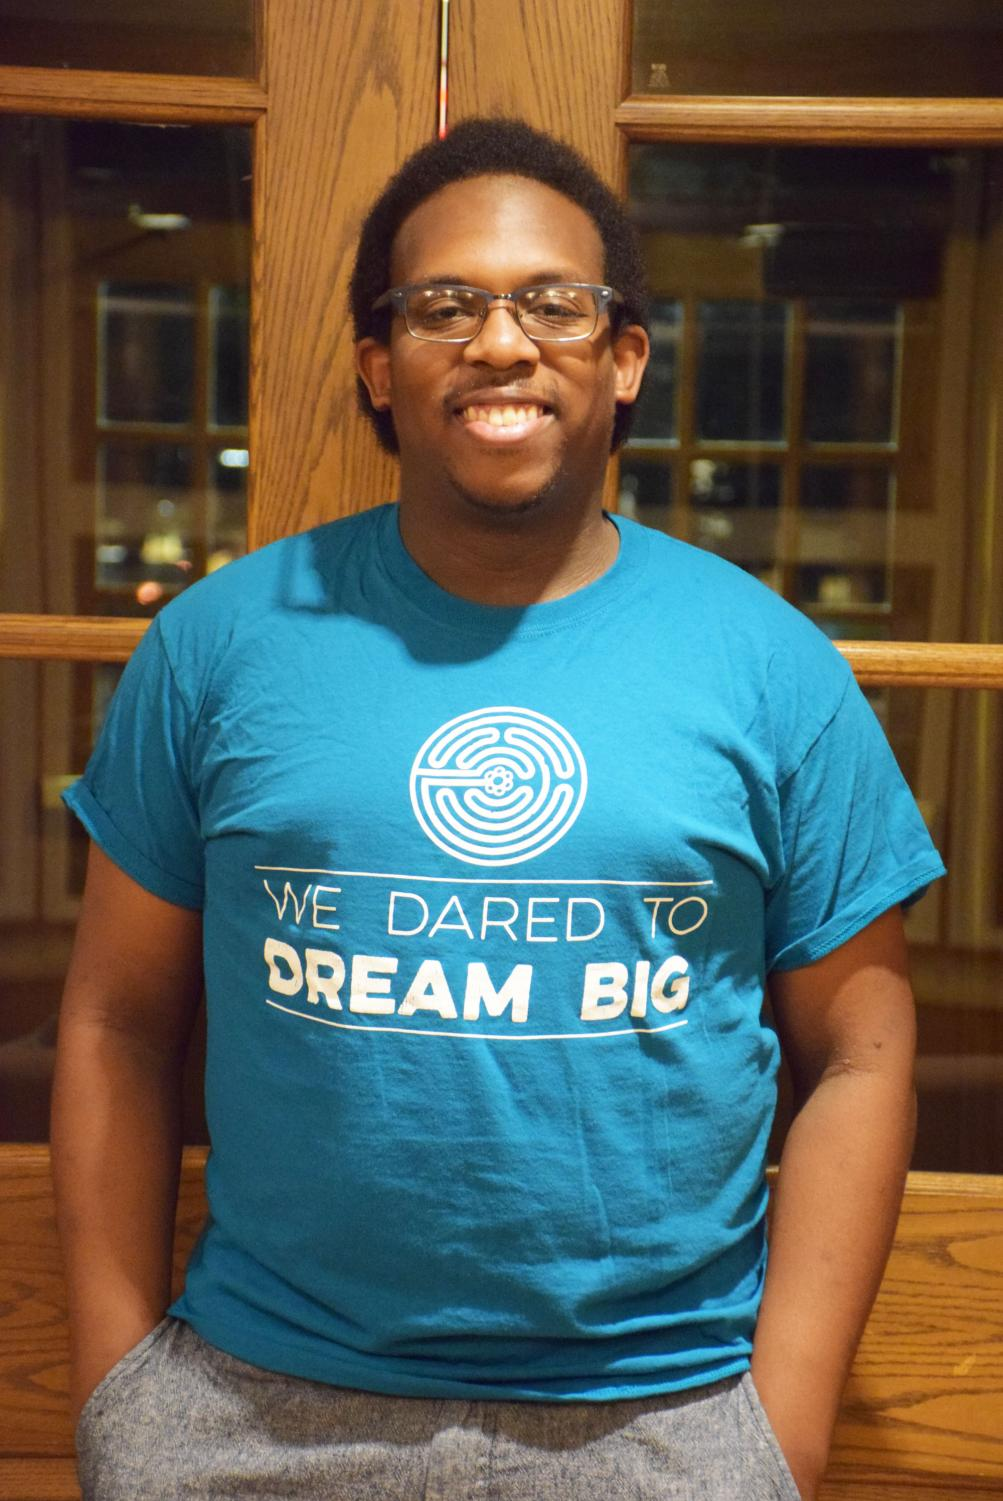 Tré Quarles, OC '18, has worked with the Oberlin administration since he was a first-year. Since graduating, he has stayed on as an office assistant for the Office of Residential Education. Quarles graduated with a degree in Africana studies and hopes to be a familiar face for students in a trying time.